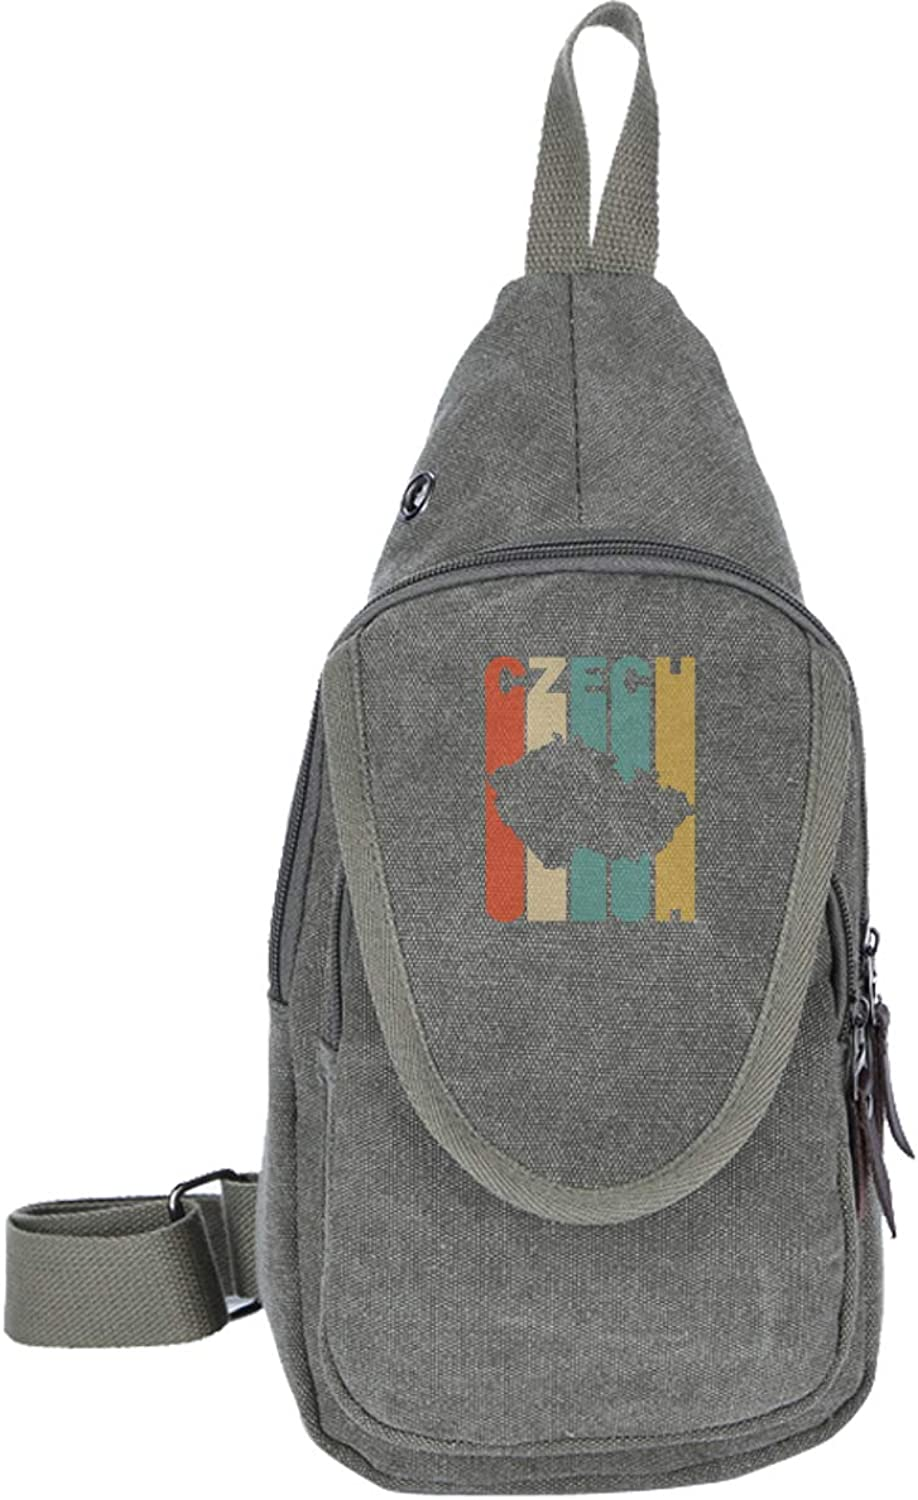 Mens and Womens Canvas Small Backpack Retro Style Czech Republic Silhouette Chest Bag, Multipurpose Crossbody Daypacks for Bicycle Sport Hiking Travel Camping